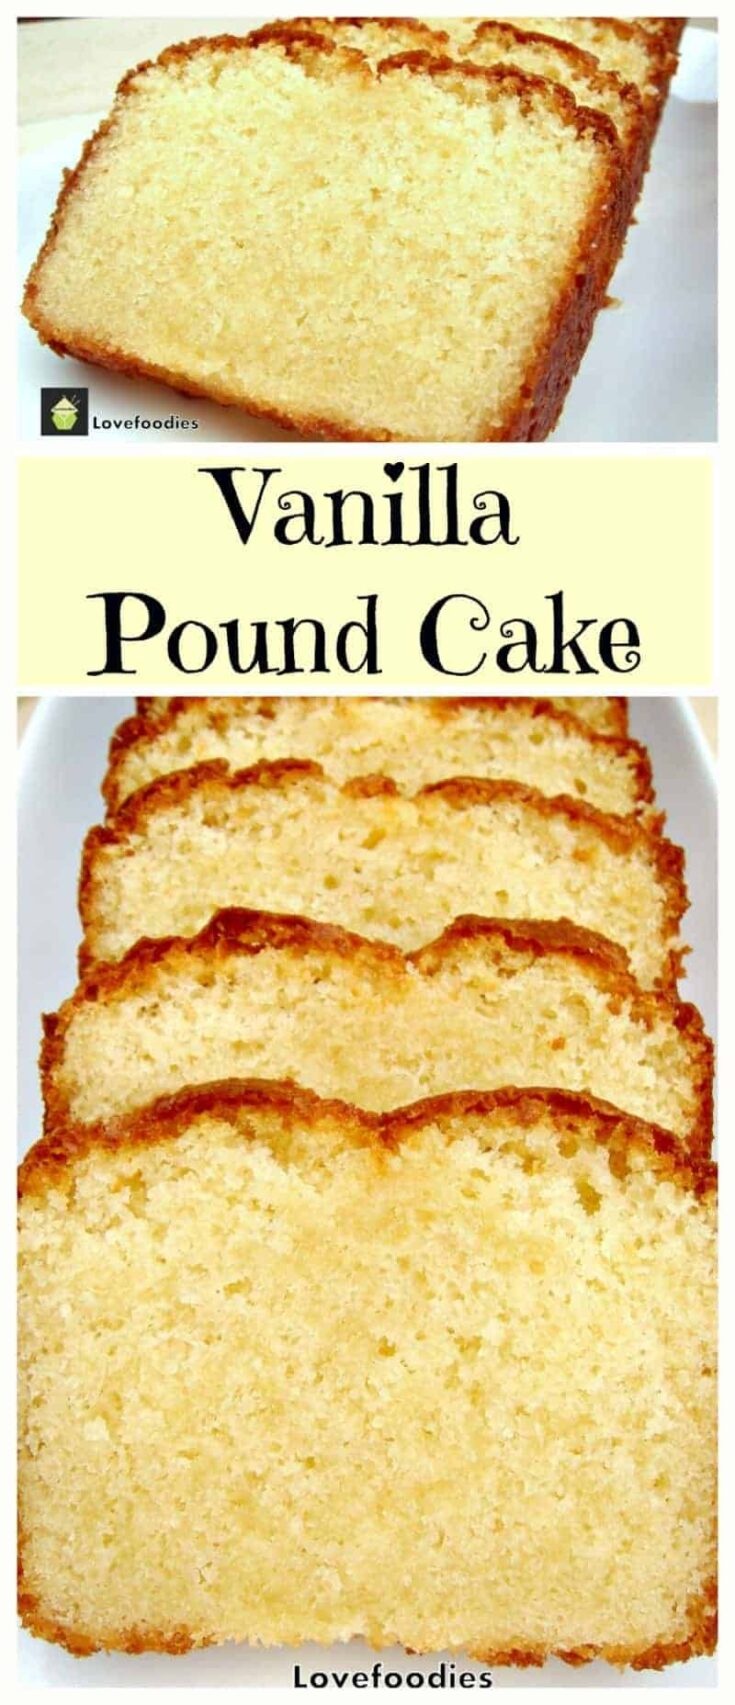 Vanilla Pound Cake. Easy Recipe and absolutely wonderful!